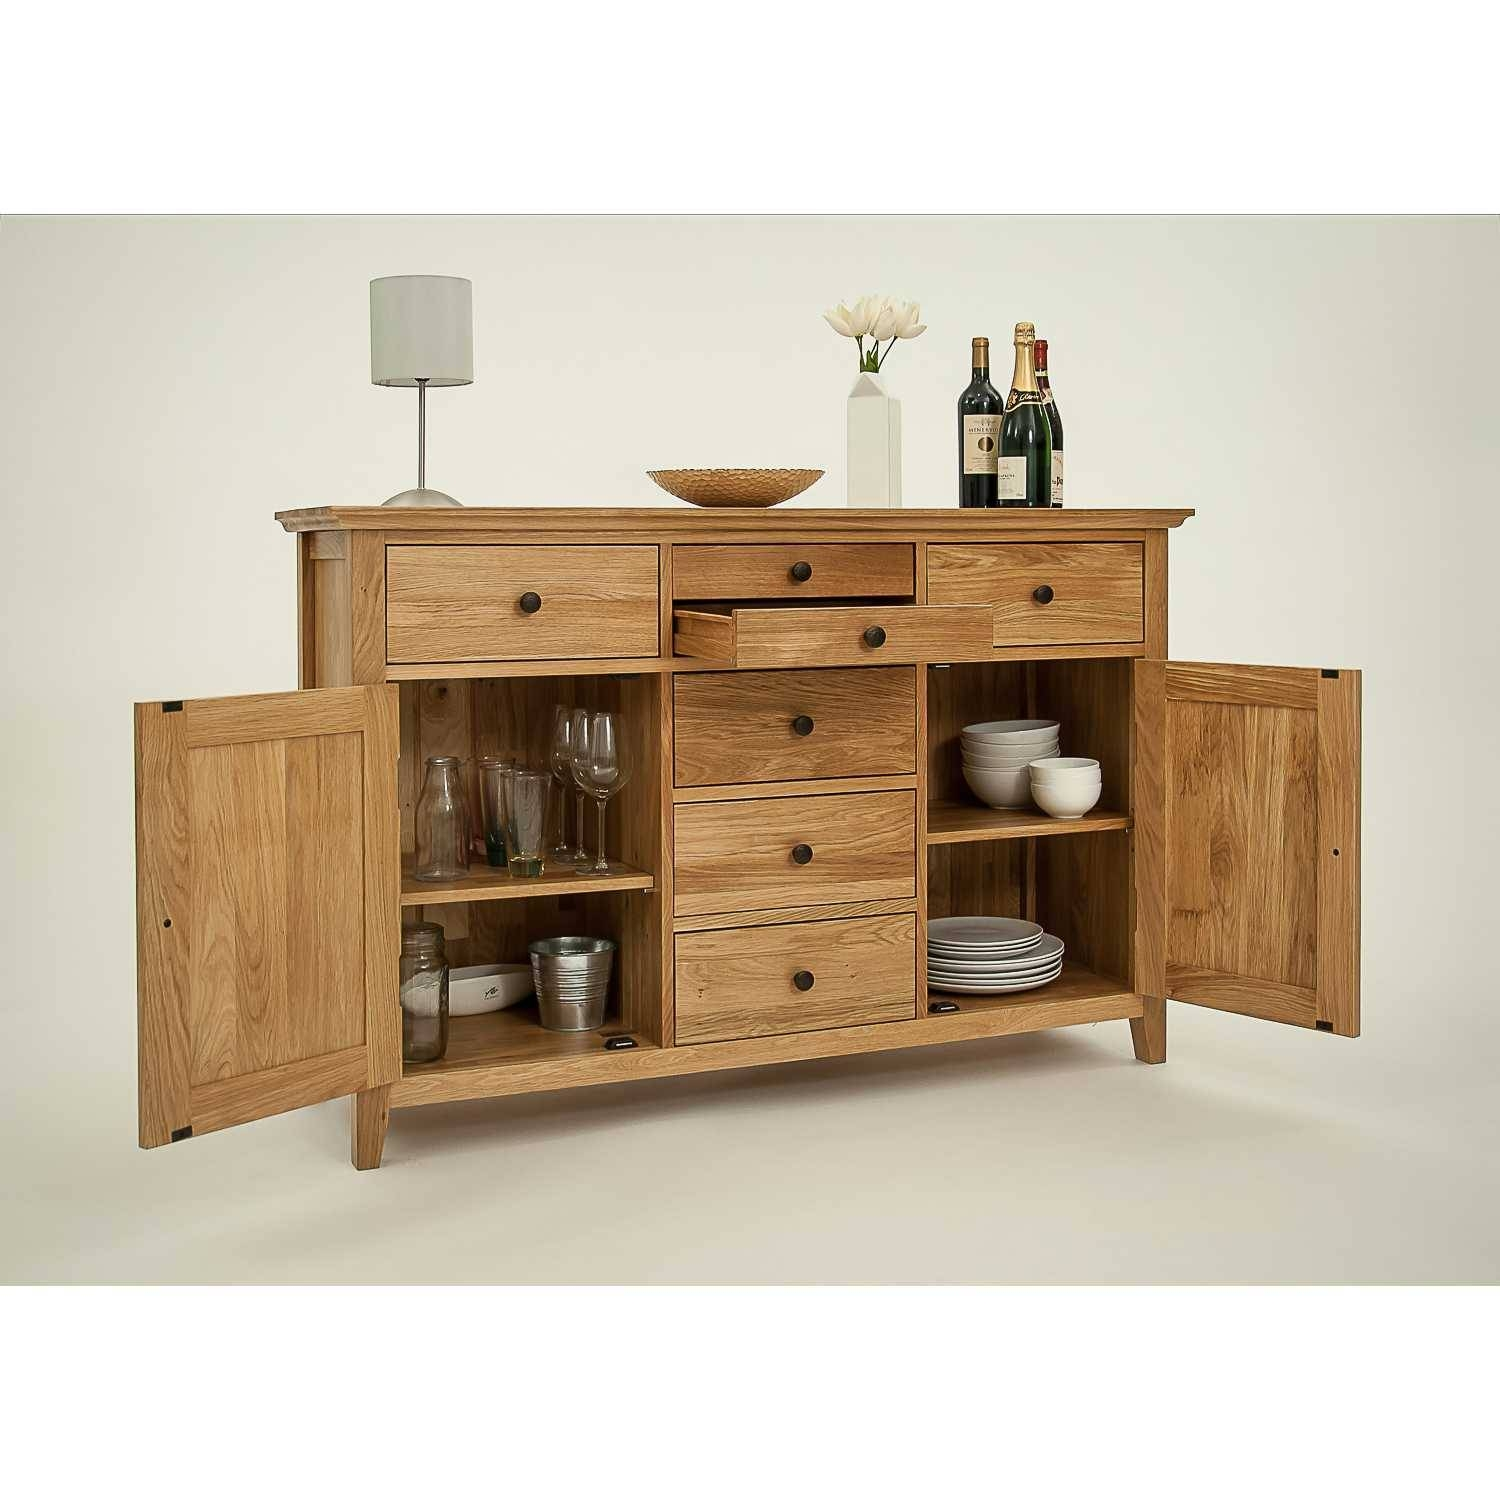 Hereford Rustic Oak Large Sideboard Within Best And Newest Rustic Oak Large Sideboards (#8 of 15)